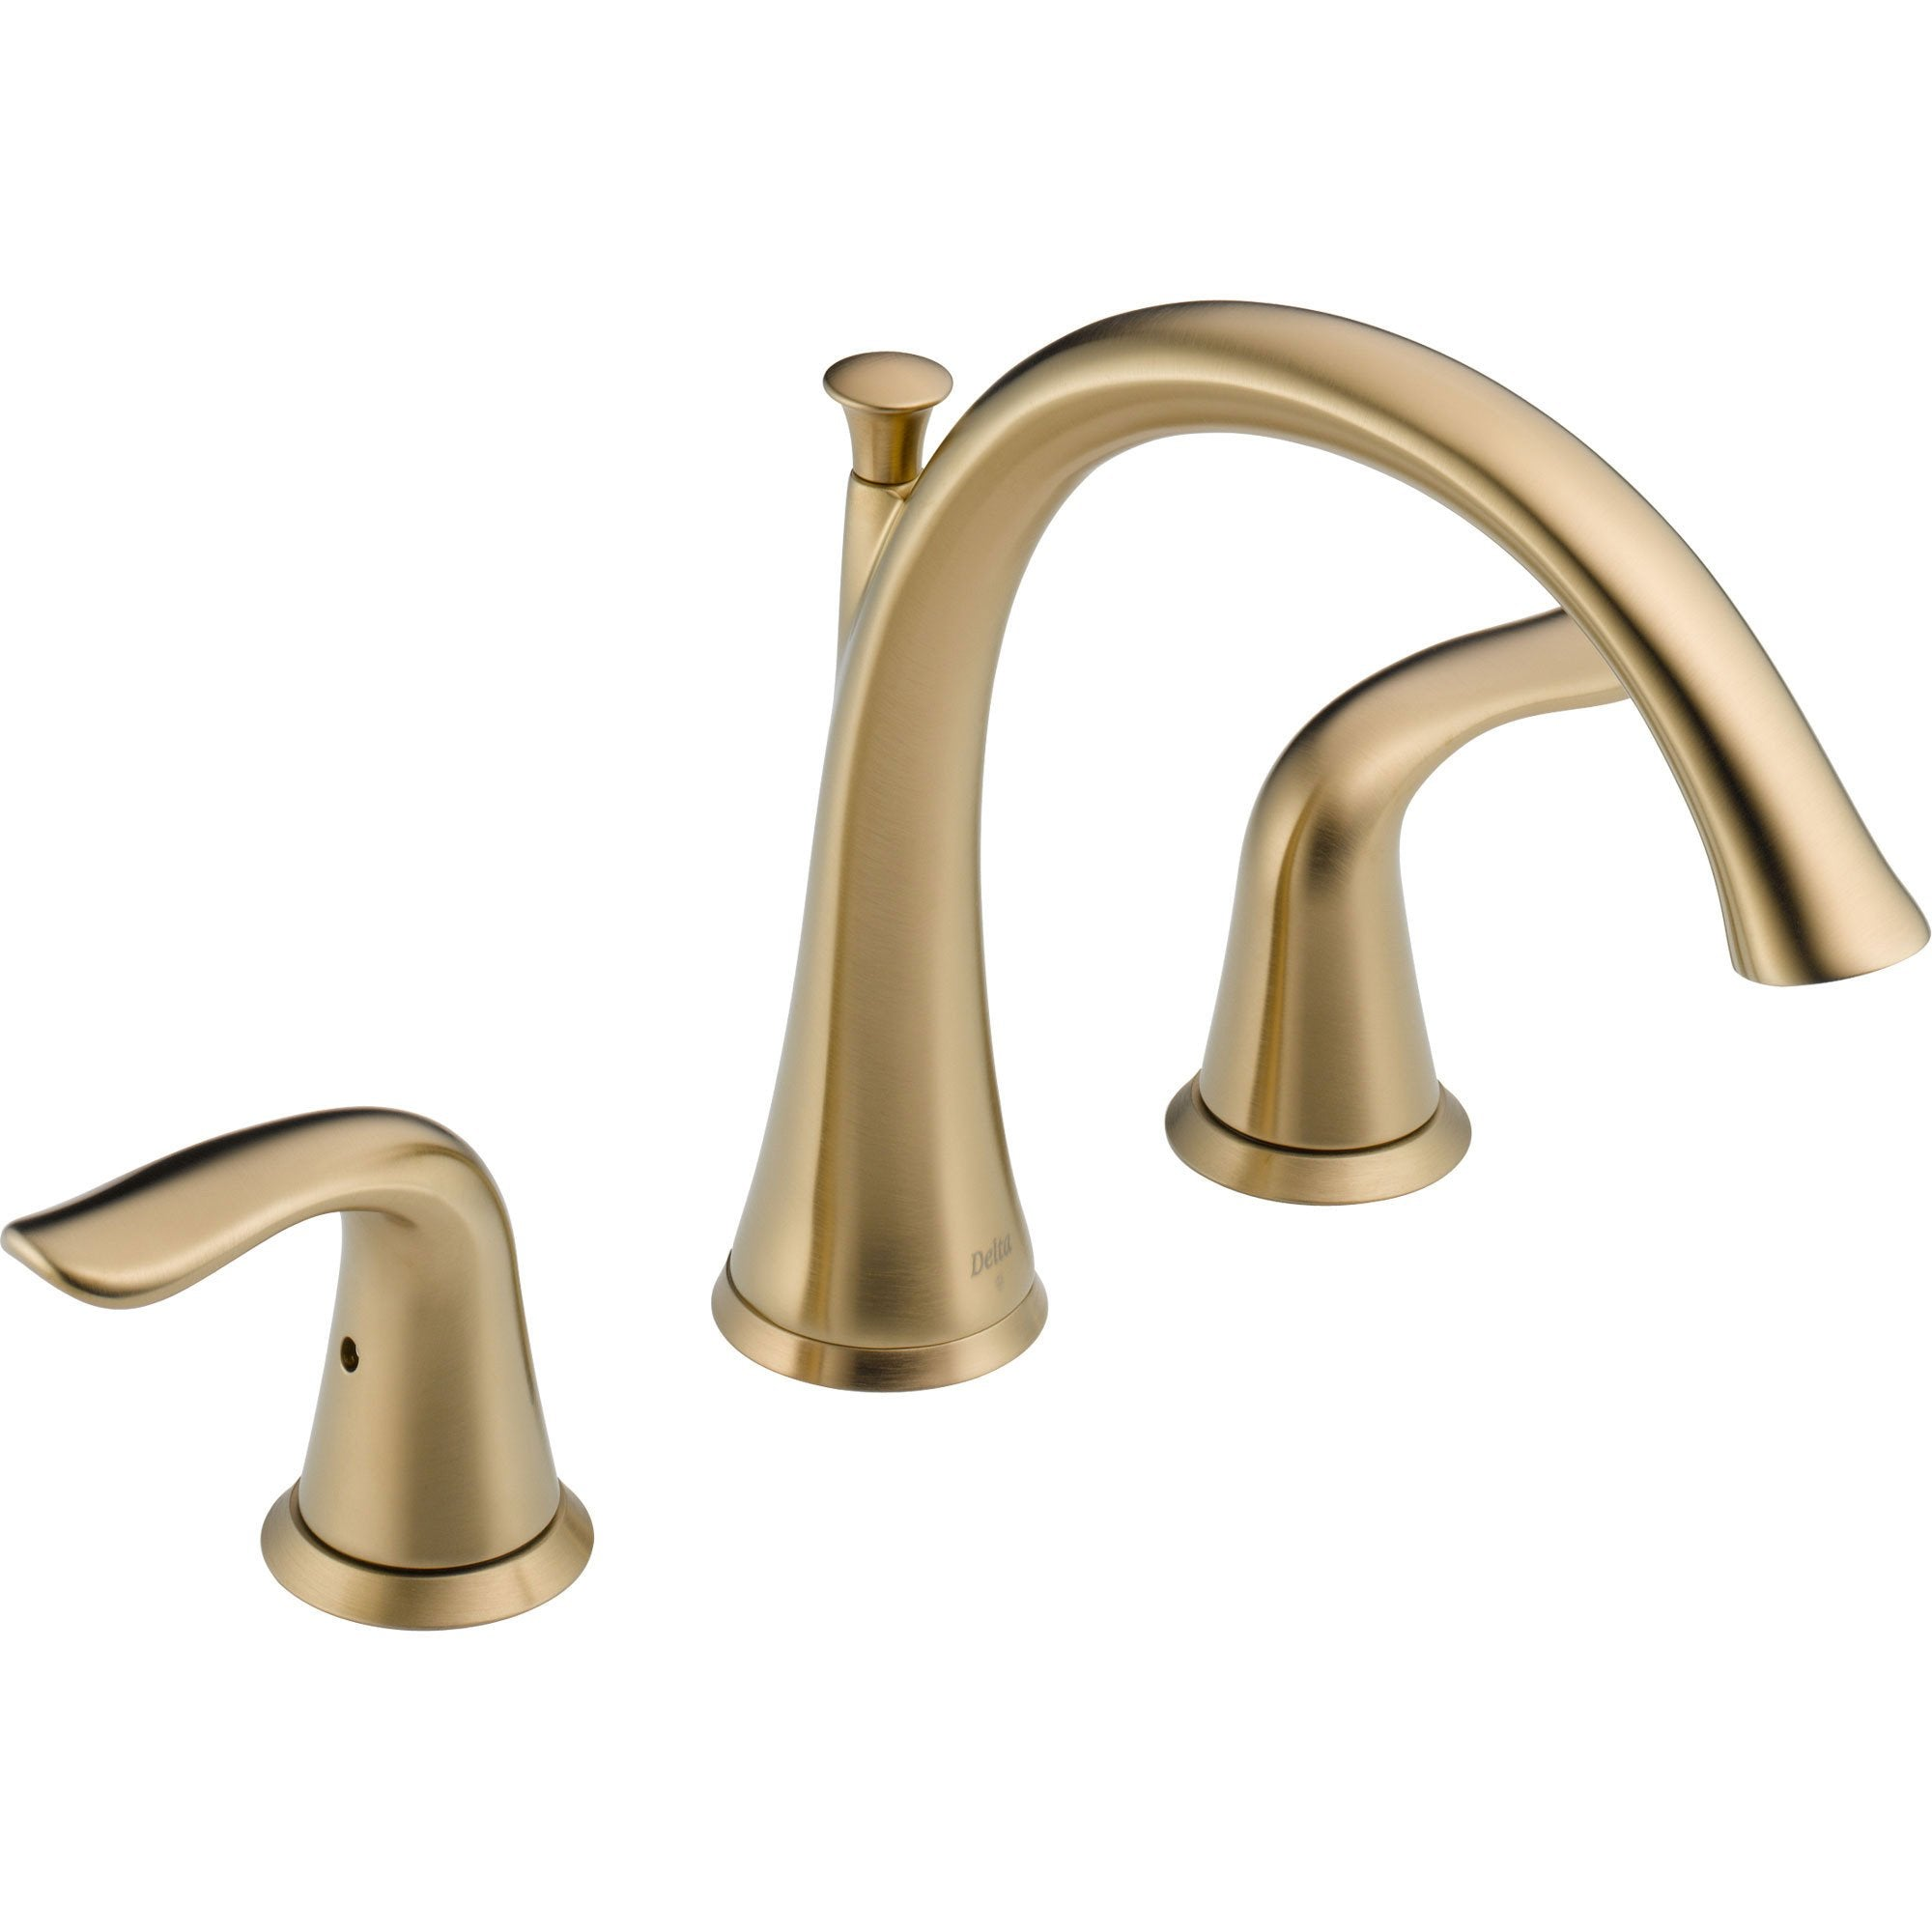 Delta Lahara Champagne Bronze Deck Mount Roman Tub Filler Faucet Trim Kit 564424